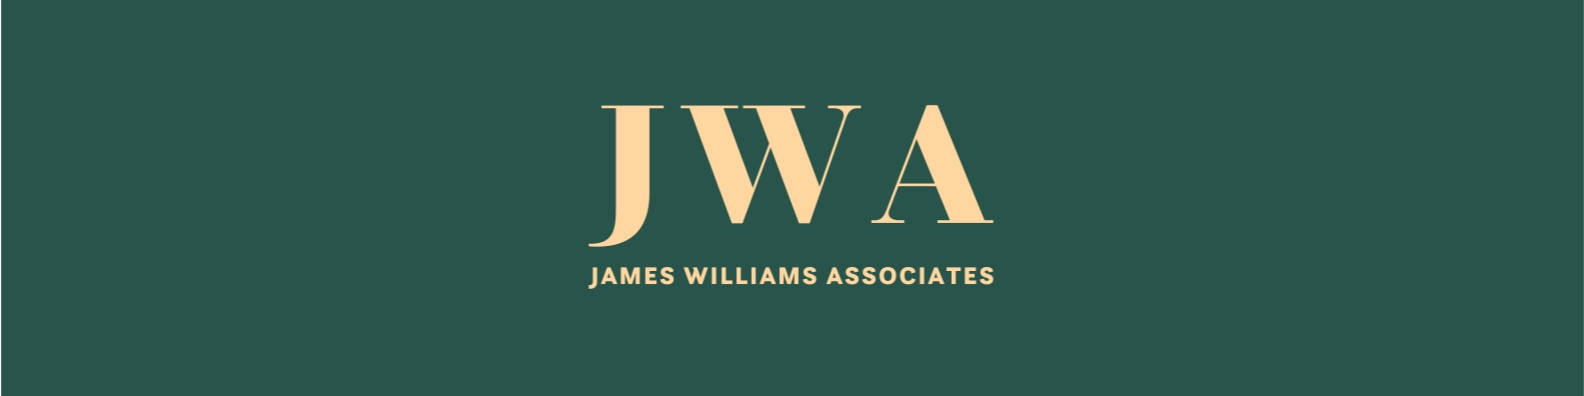 James Williams Associates